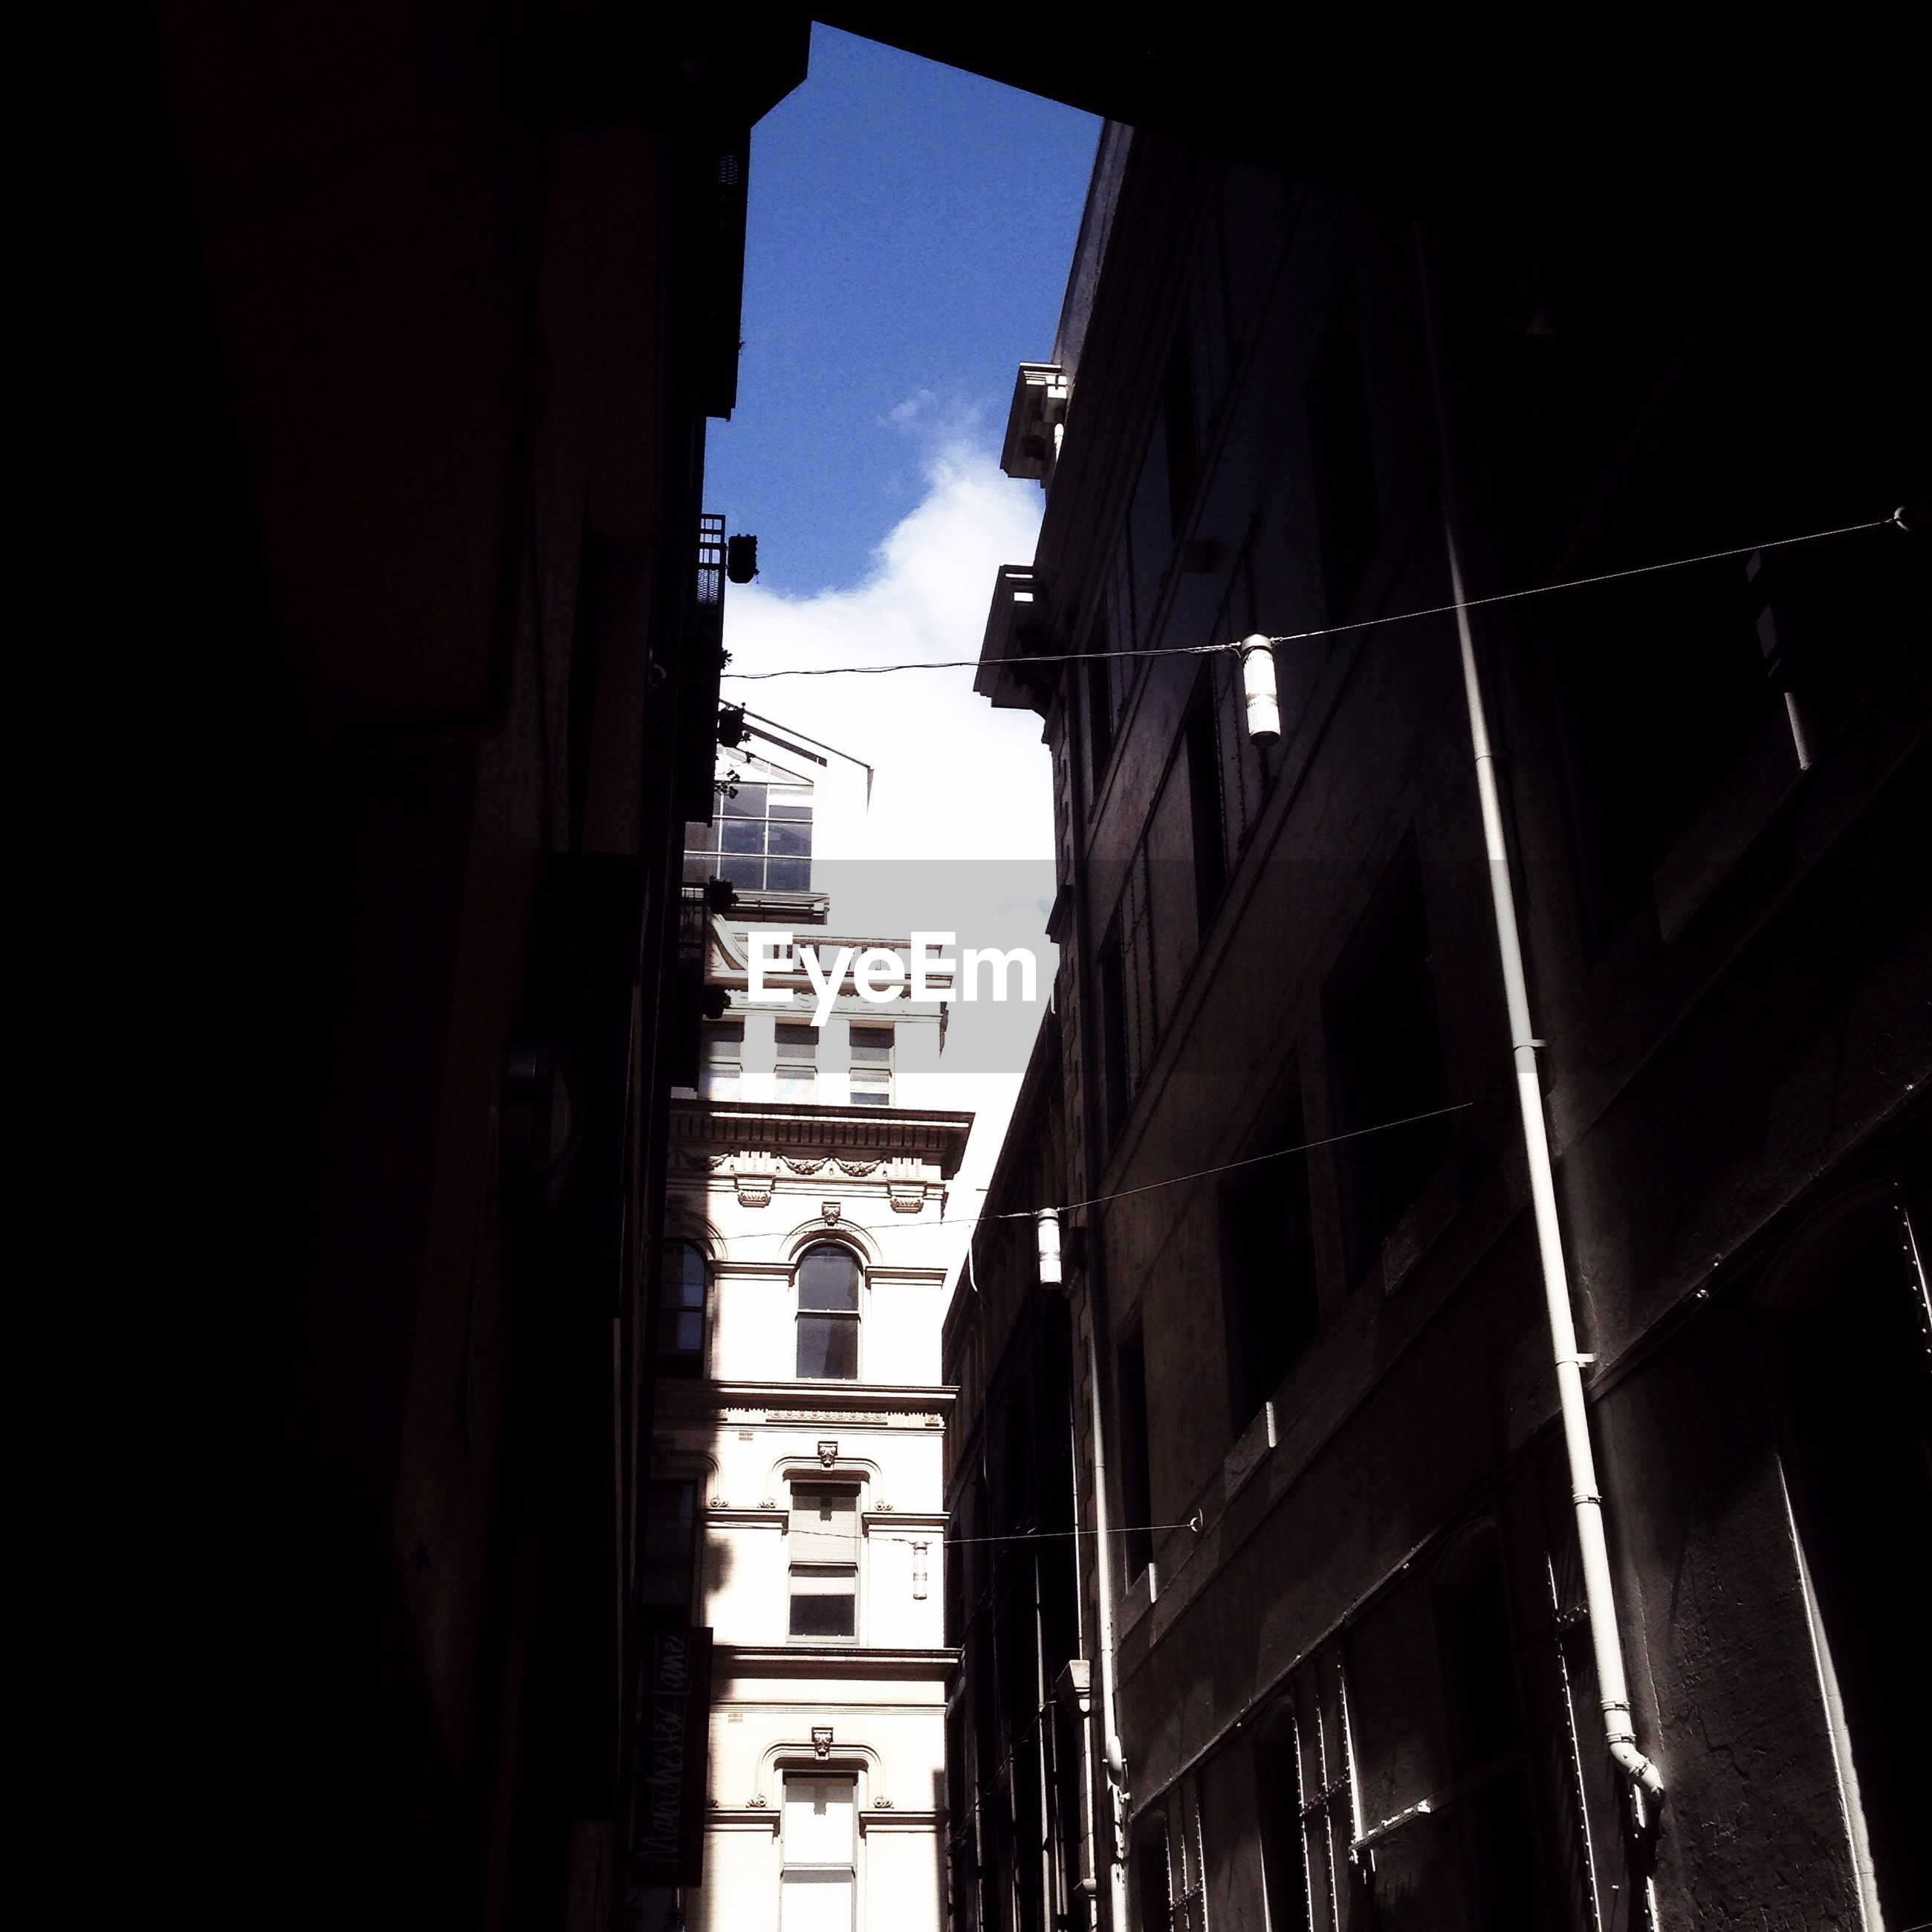 building exterior, architecture, built structure, city, low angle view, building, residential building, sky, residential structure, street, window, city life, street light, outdoors, no people, day, residential district, house, transportation, city street